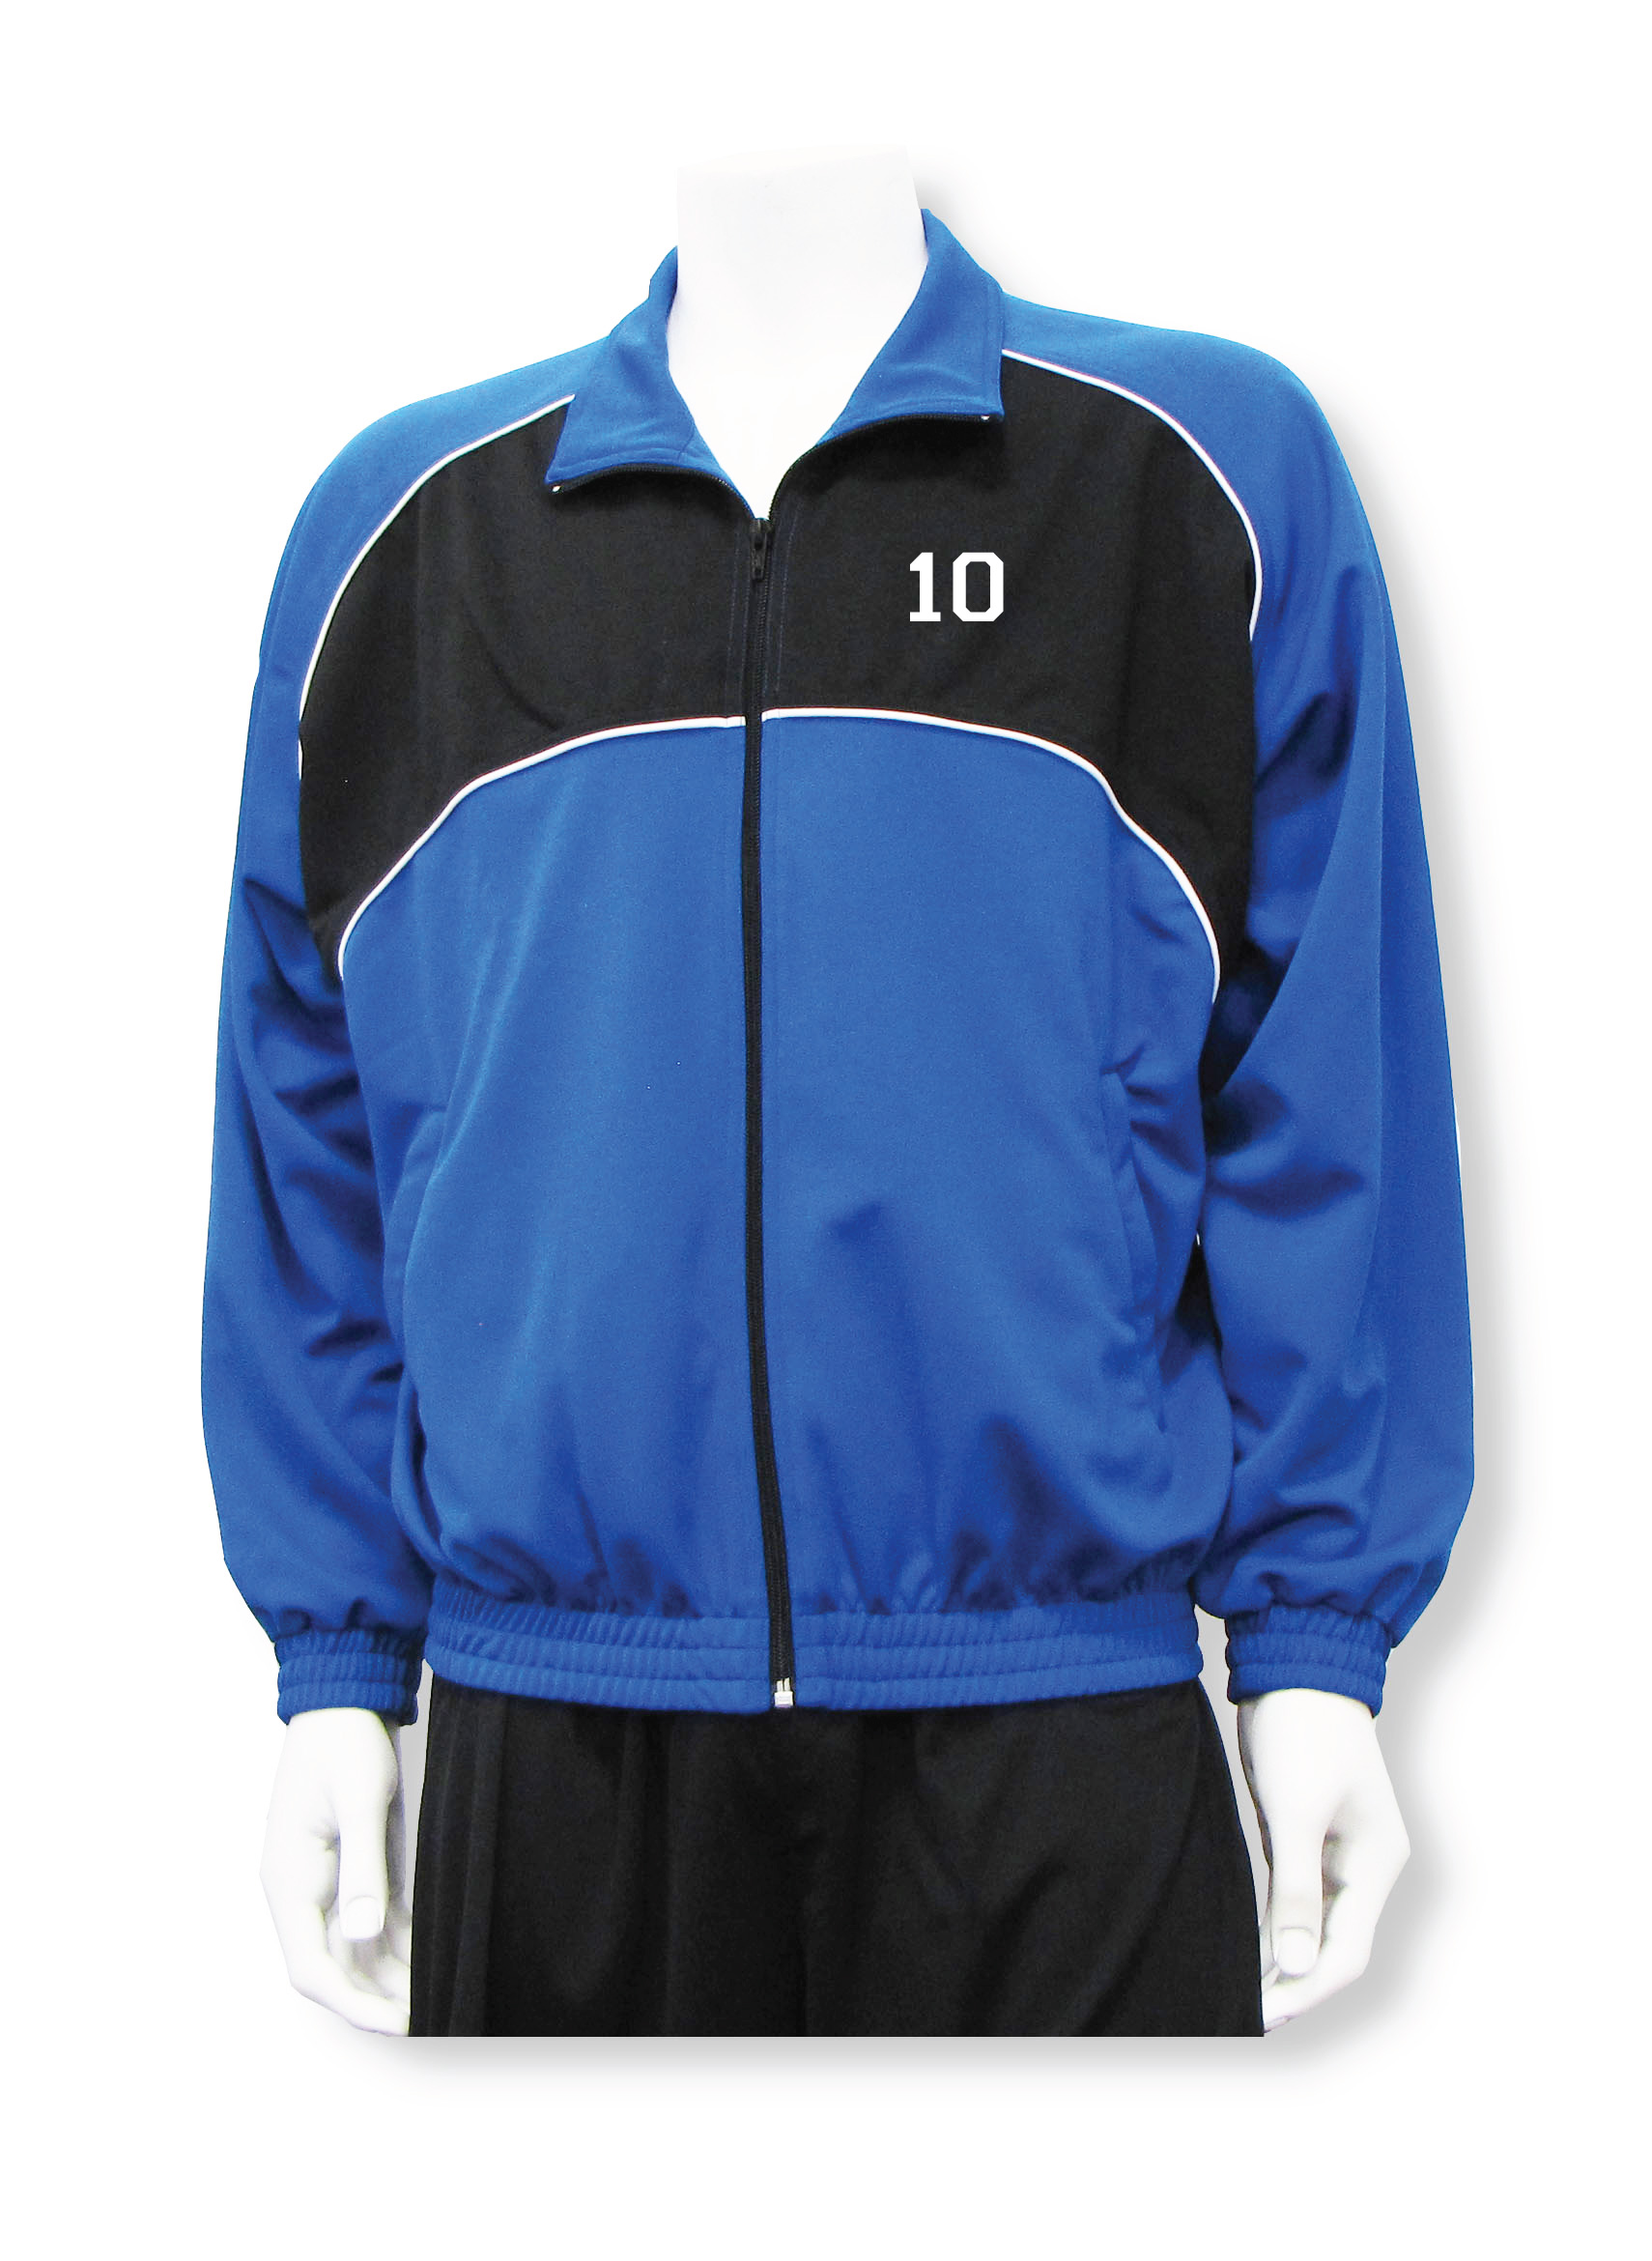 Crossfire soccer warm up jacket with number in royal/black by Code Four Athletics